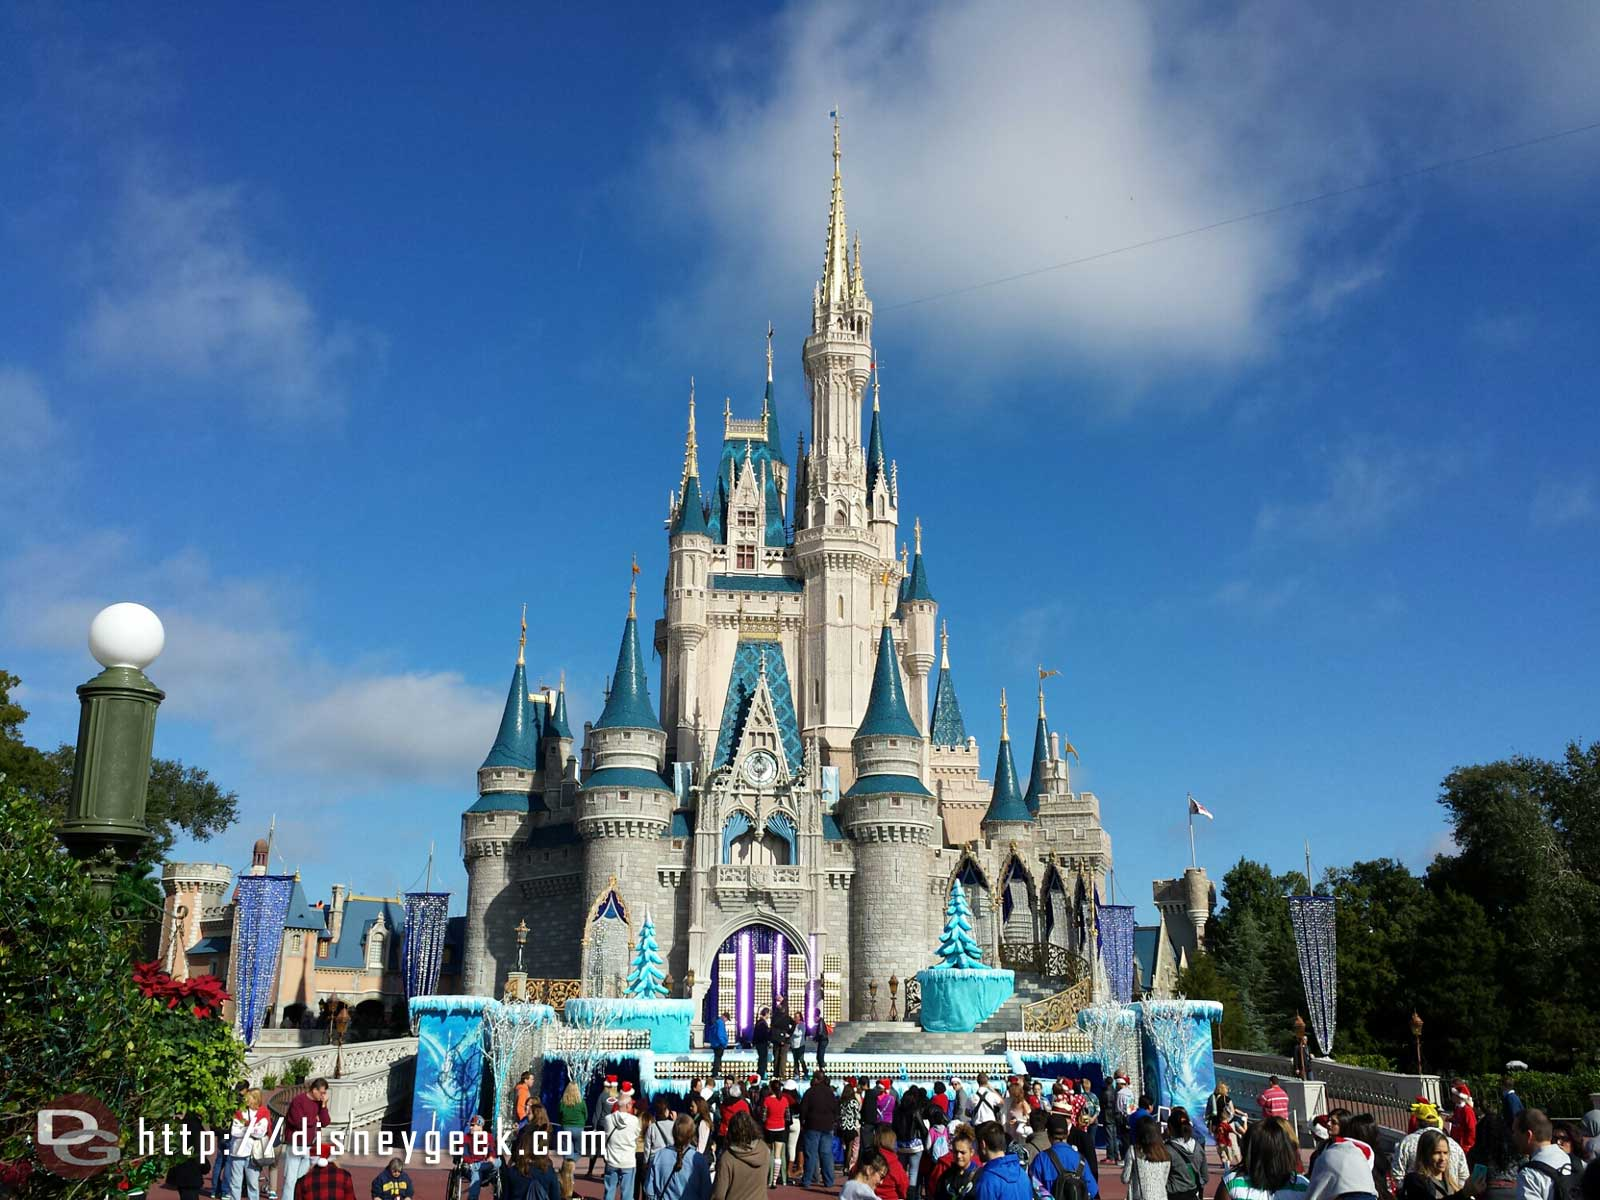 Cinderella Castle this morning #wdw